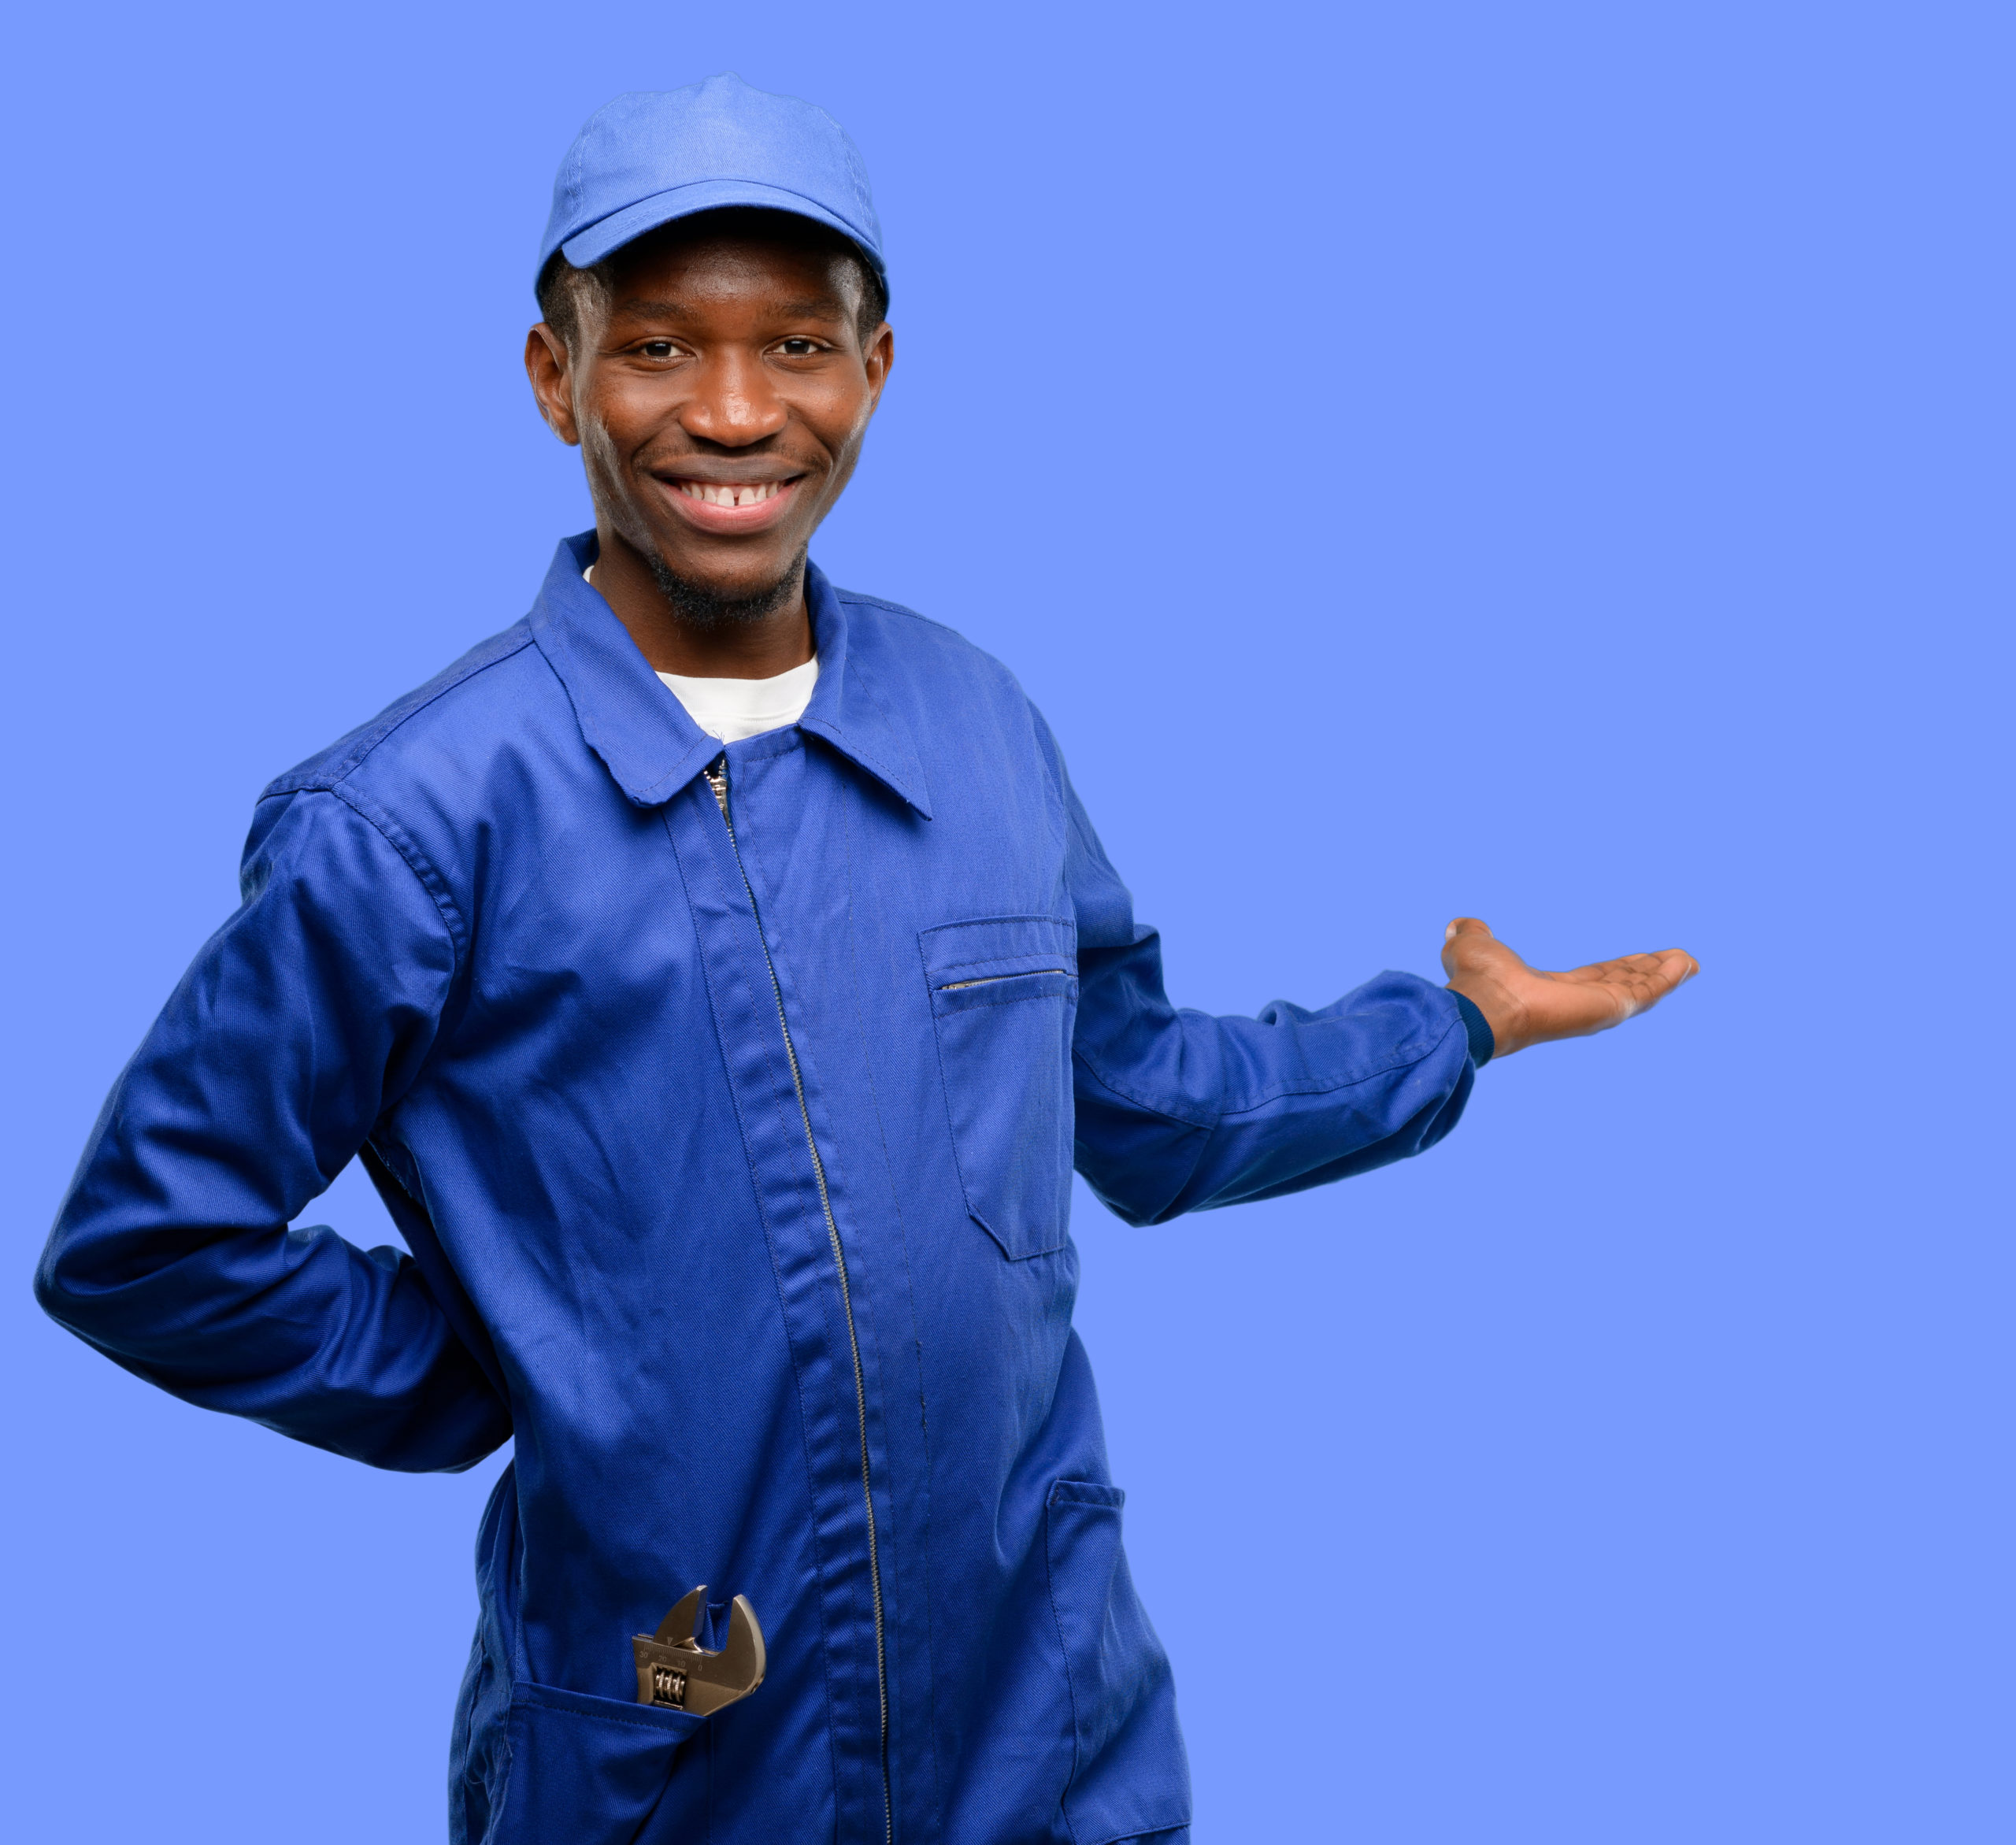 African black plumber man confident and happy with a big natural smile inviting to enter